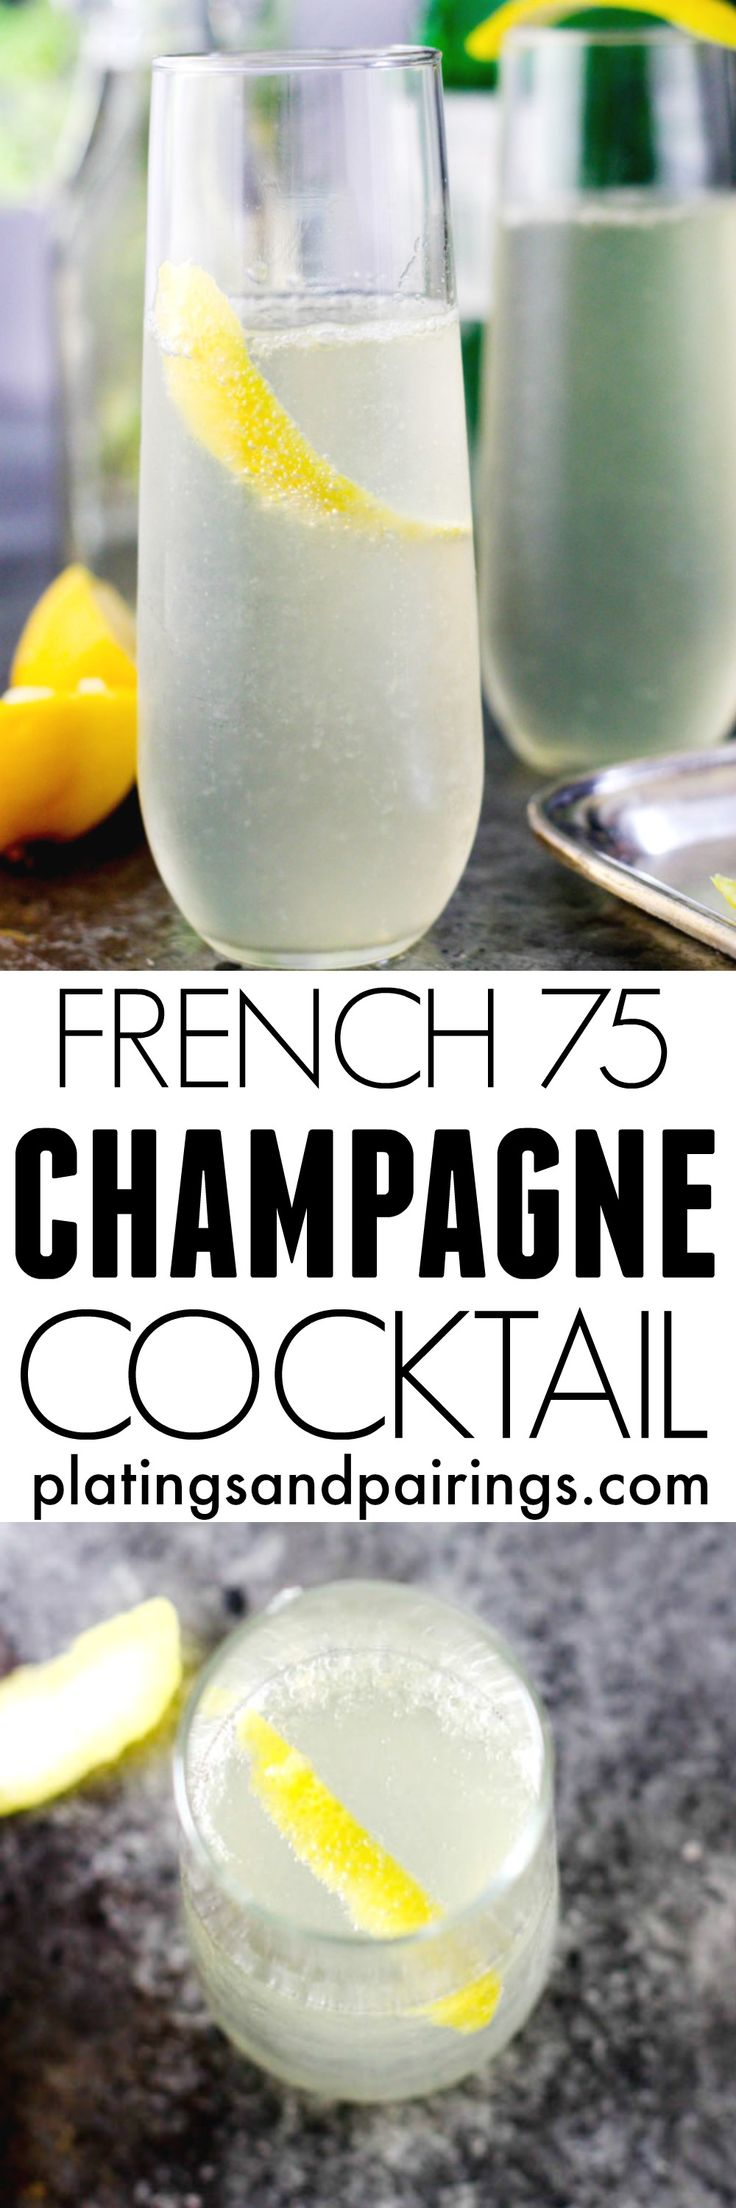 about Champagne Gifts on Pinterest | Custom Wine Labels, Champagne ...